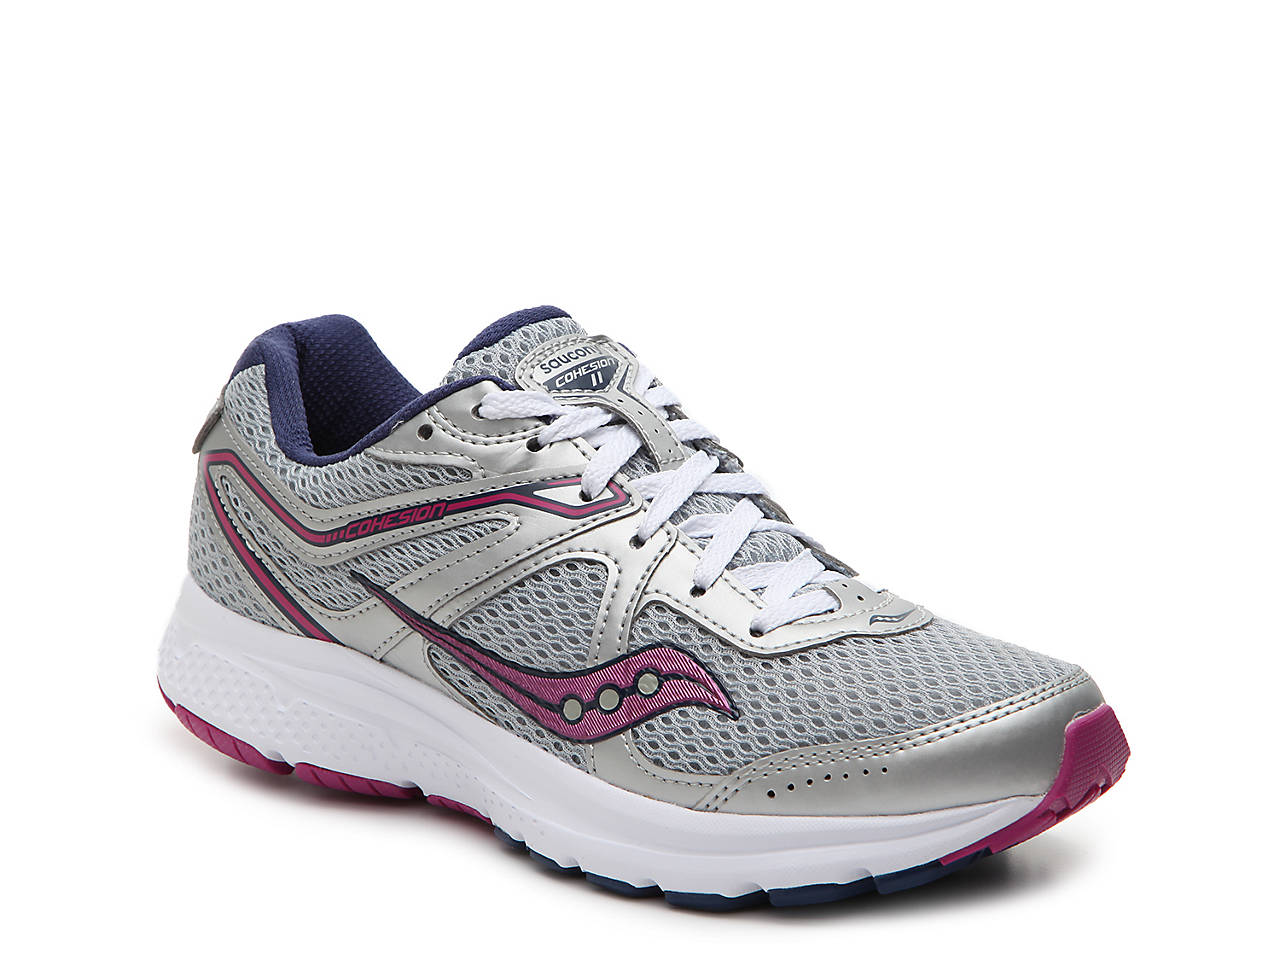 Saucony Grid Cohesion 11 Running Shoe - Women s Women s Shoes  b5fa5cab933b